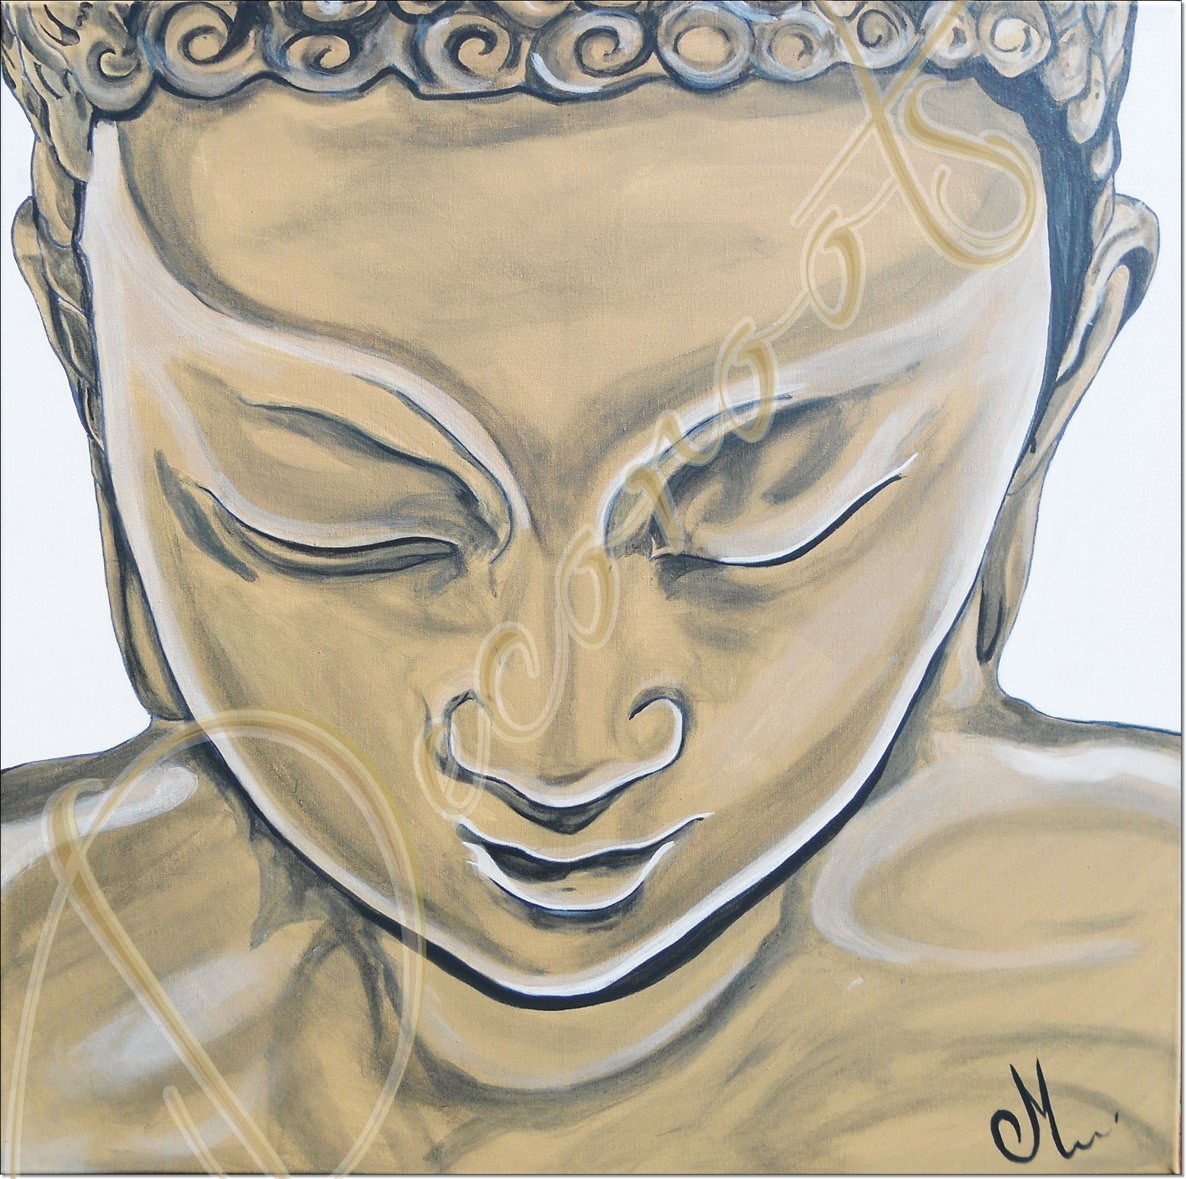 tableau-zen-ethnique-bouddha-blanc-marron-taupe-moderne-contemporain-peint-a-la-main-decoration-chambre-salon-af-j-0116219001347803299